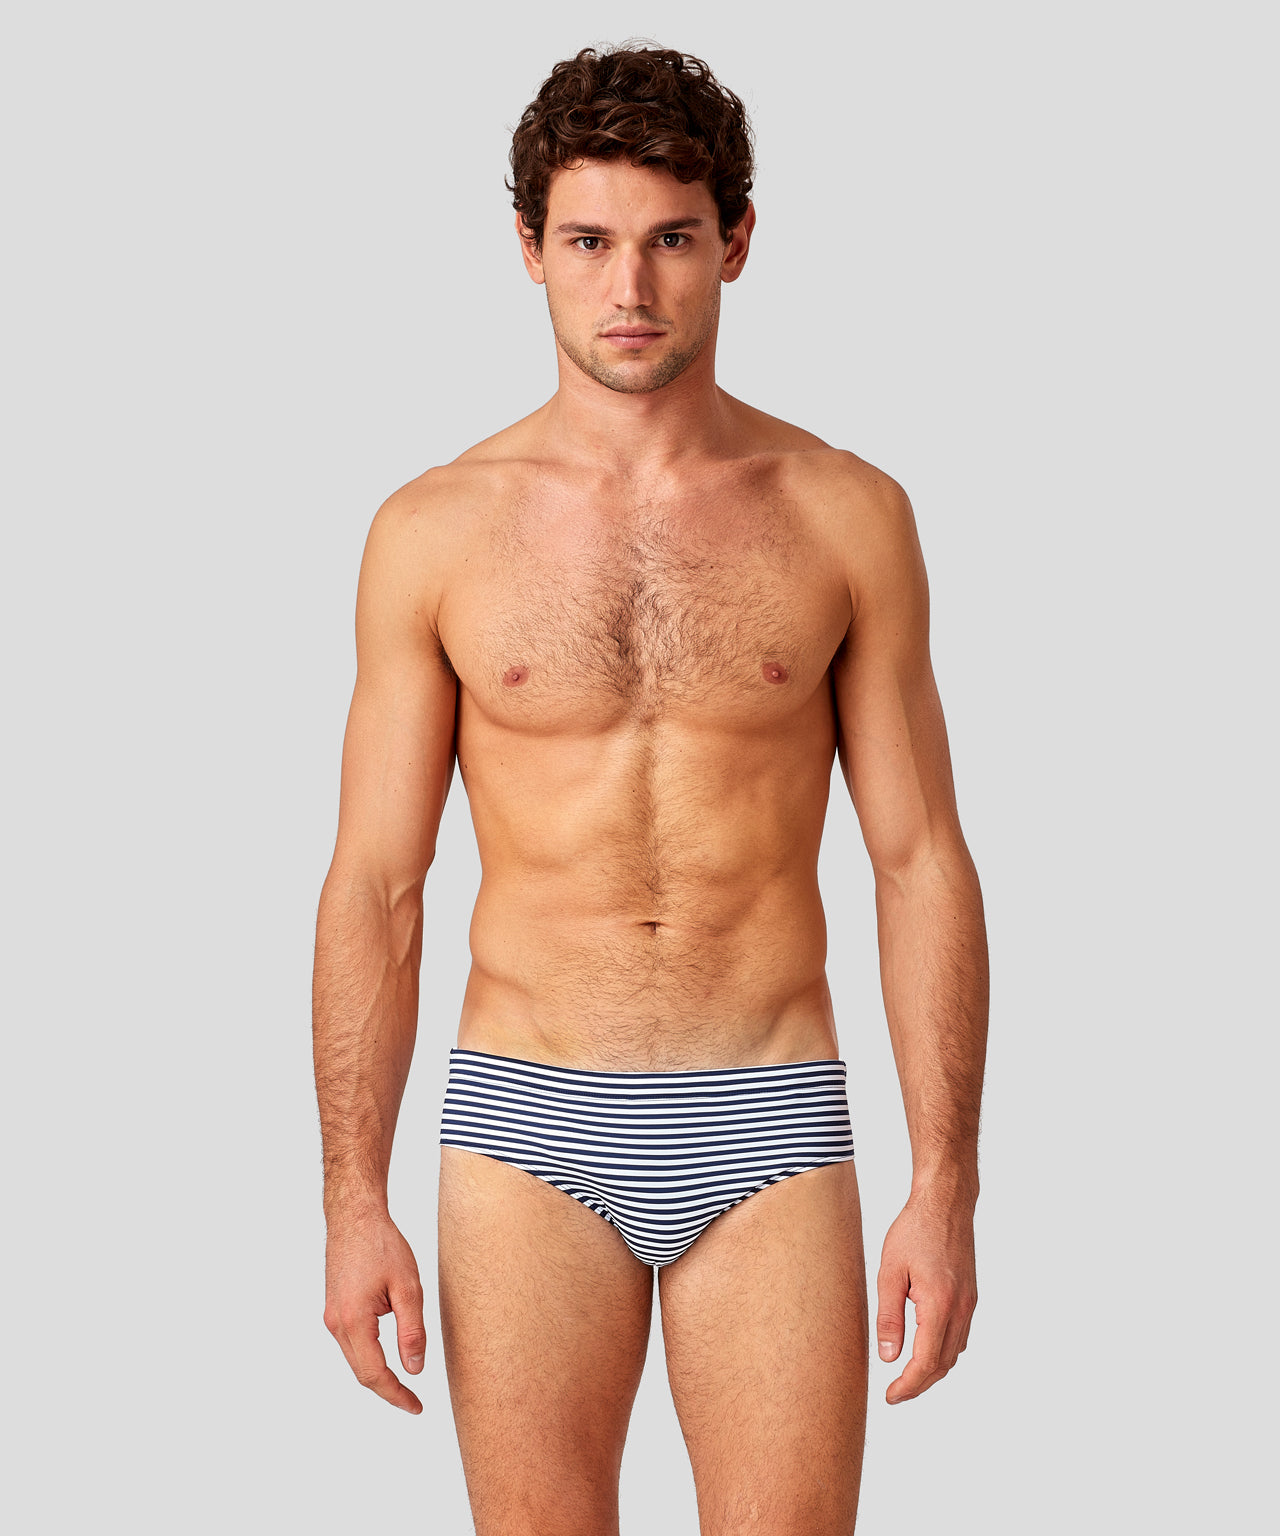 Swim Briefs Horizontal Thin Stripes - navy/white